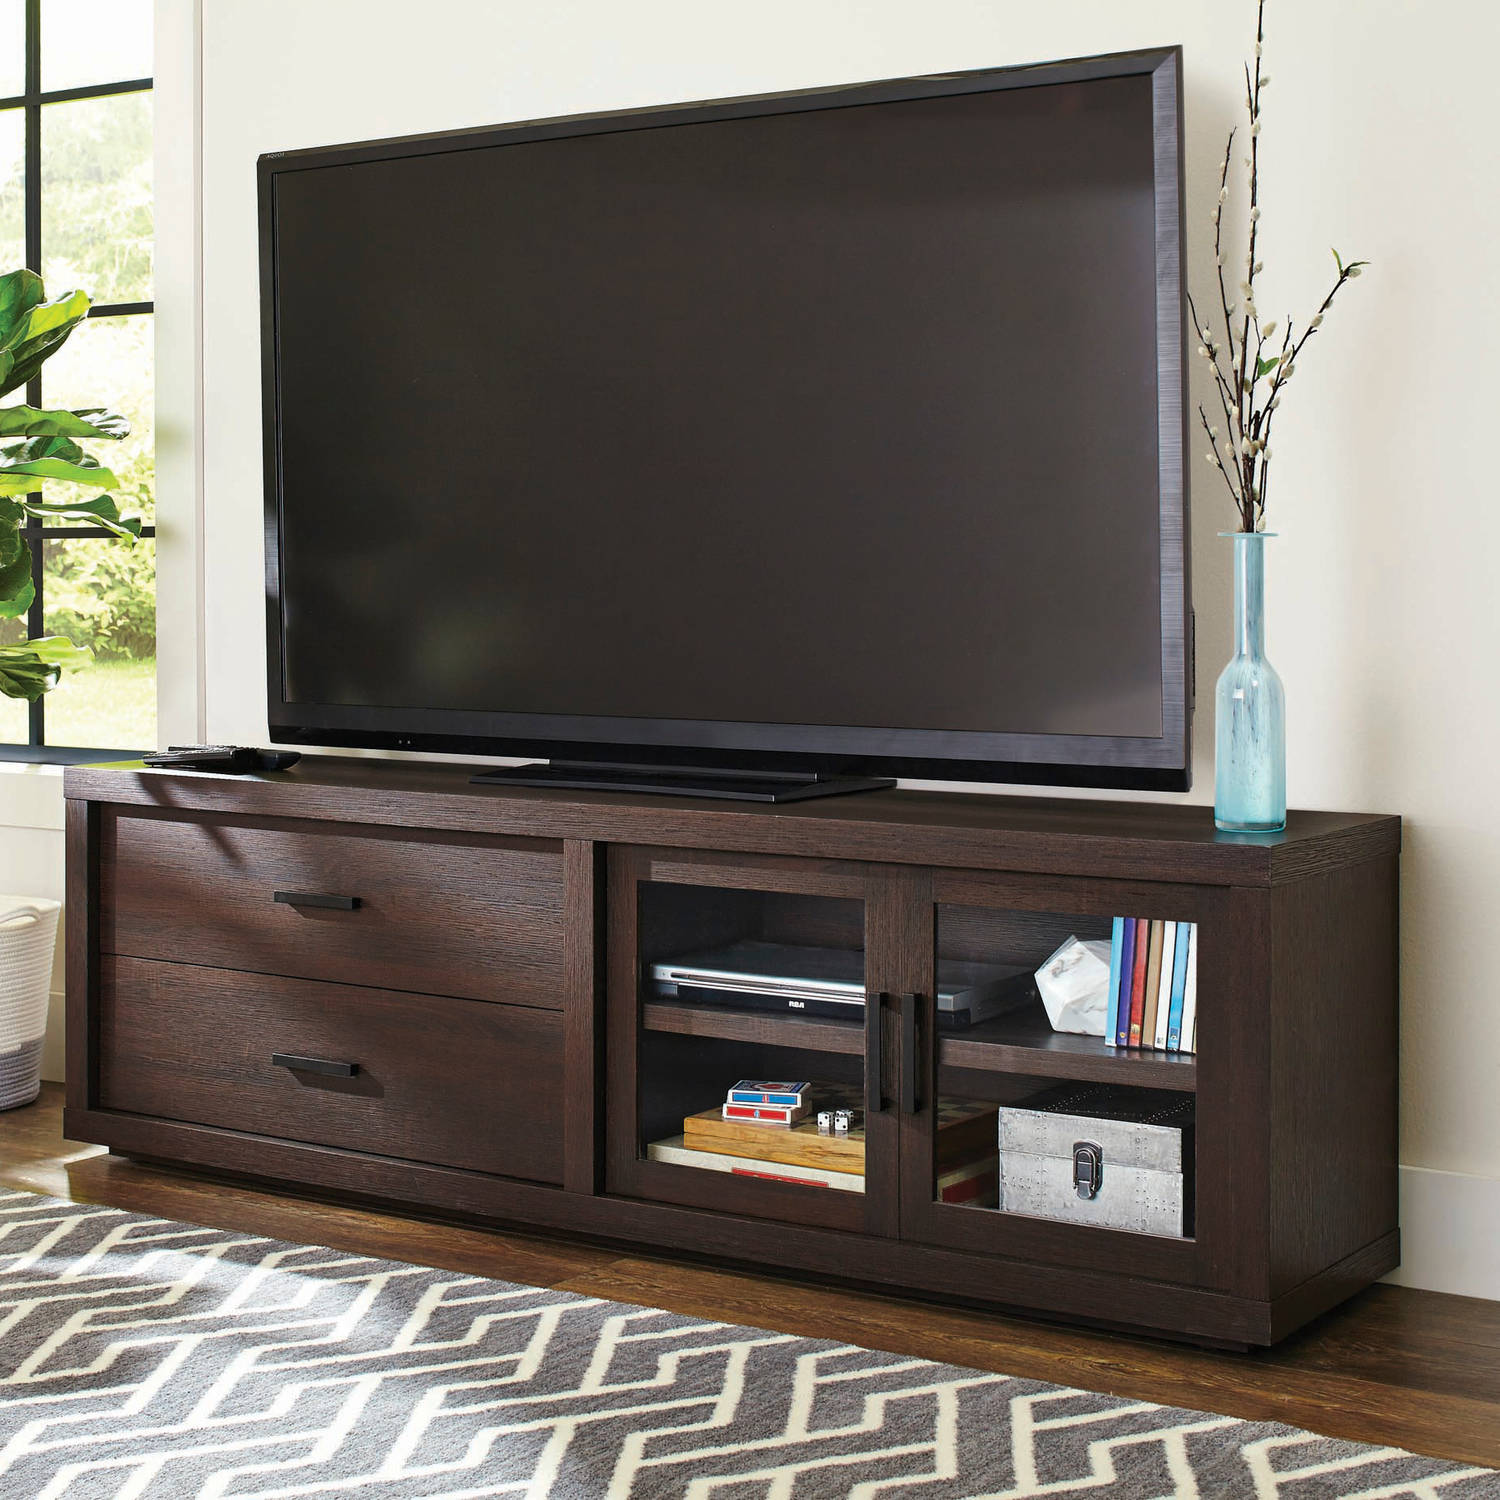 Better Homes & Gardens Steele TV Stand for TV's up to 80